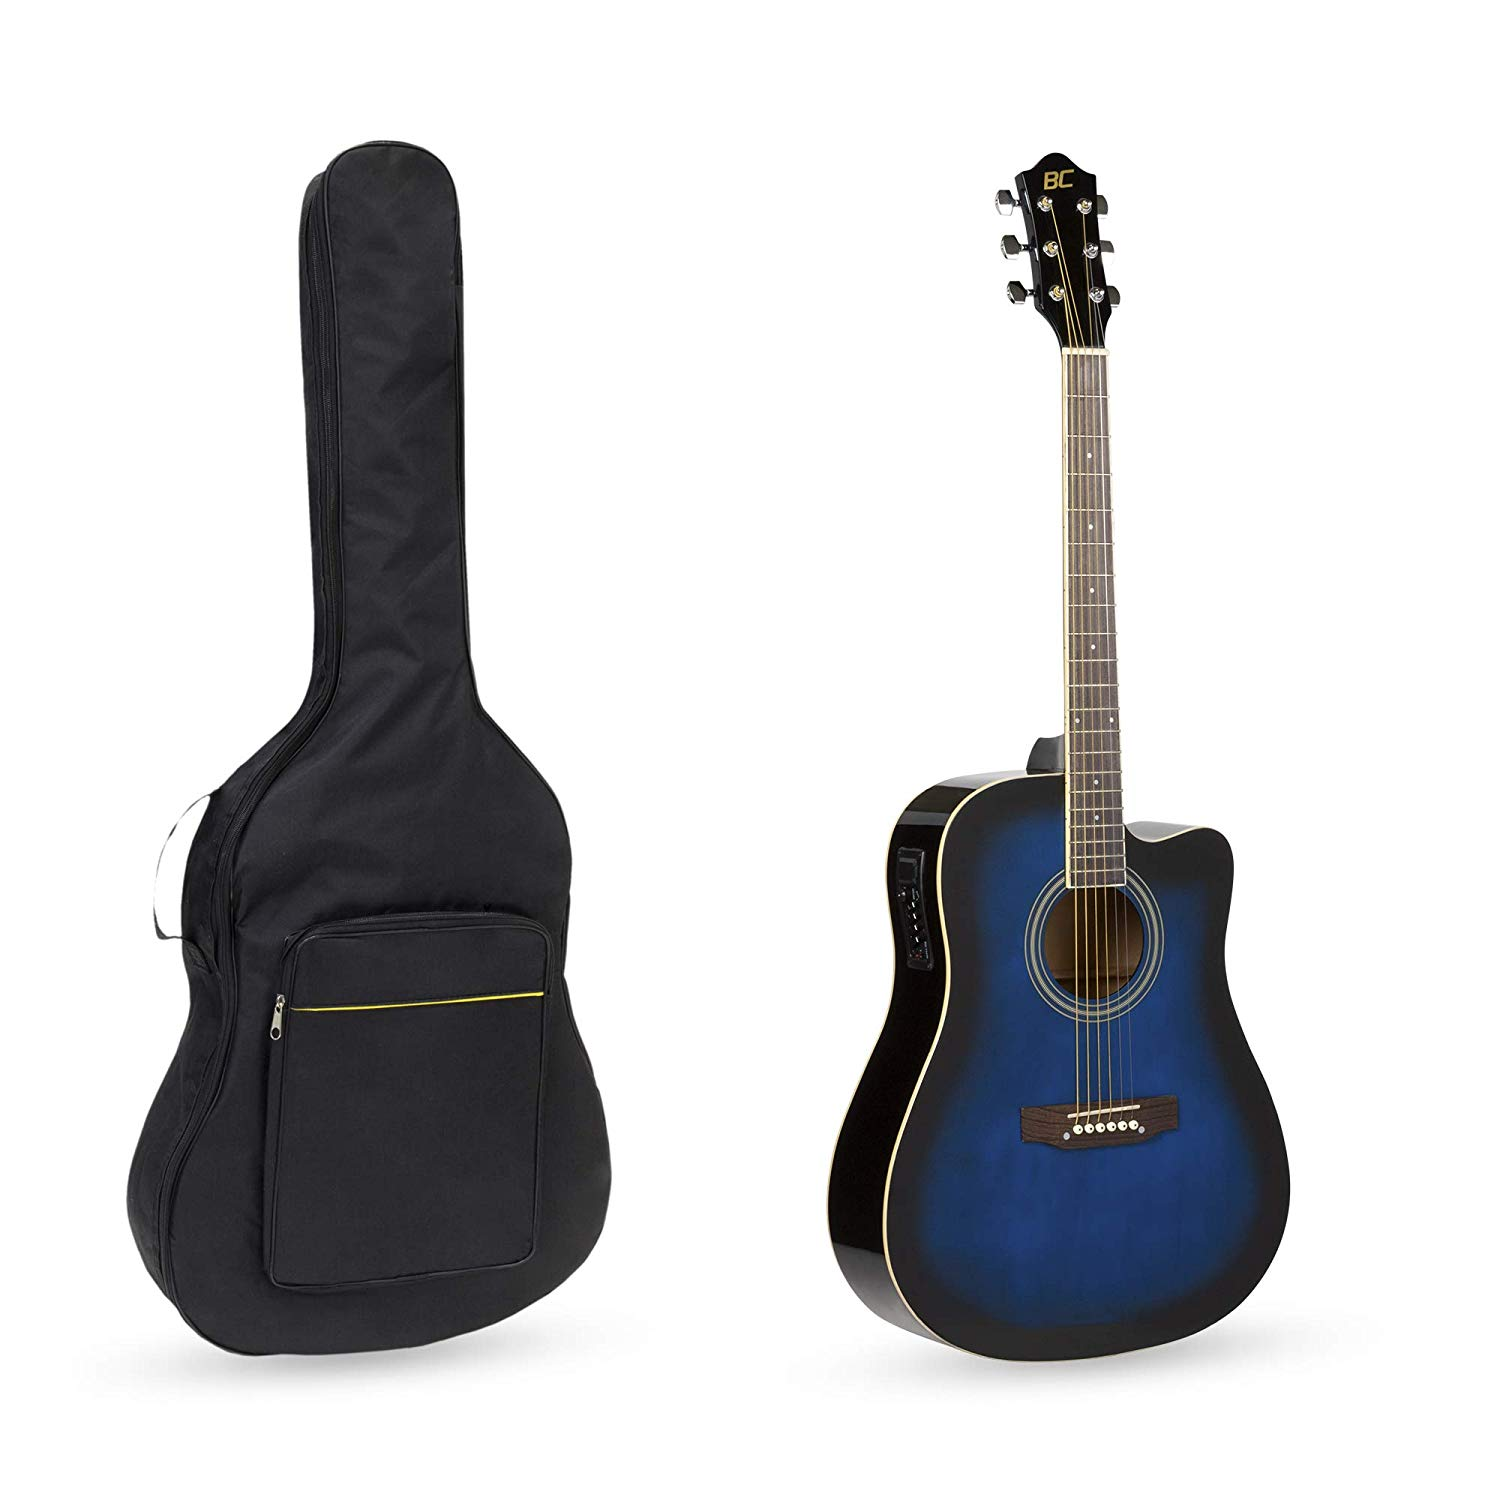 The Blue Colored BC Acoustic-Electric Guitar and Guitar Gig bag standing side by side